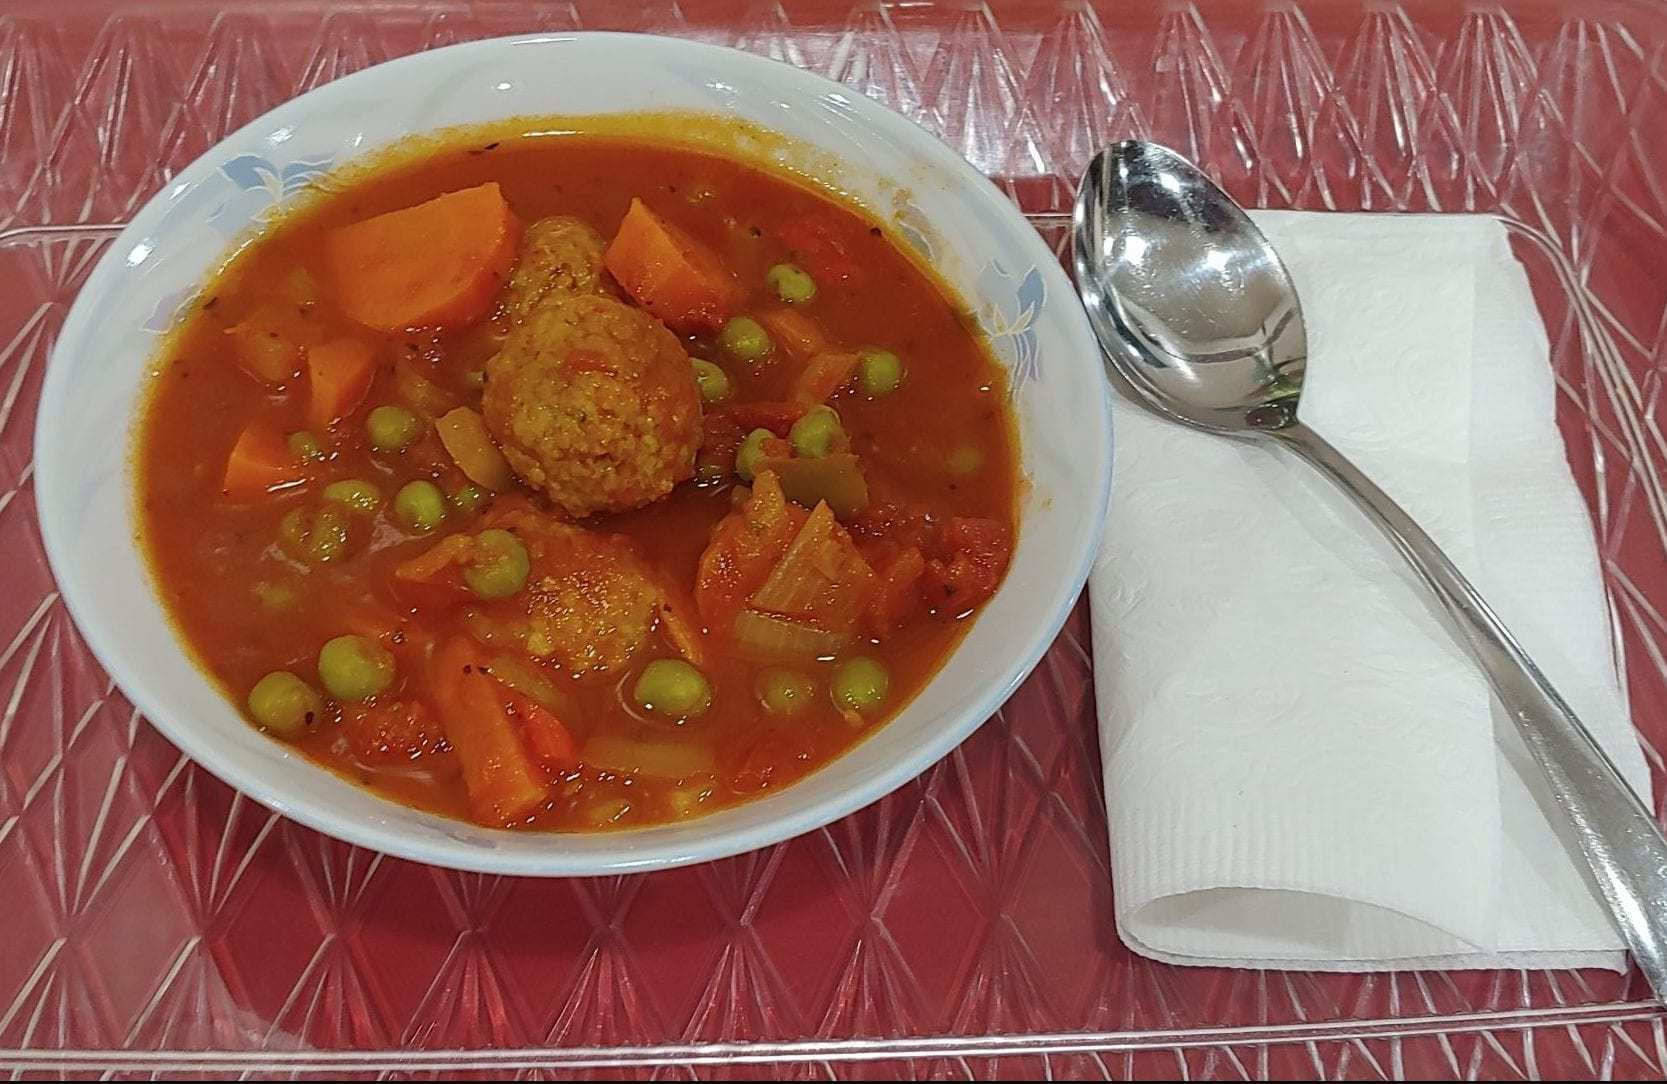 Lunchroom bowl of soup